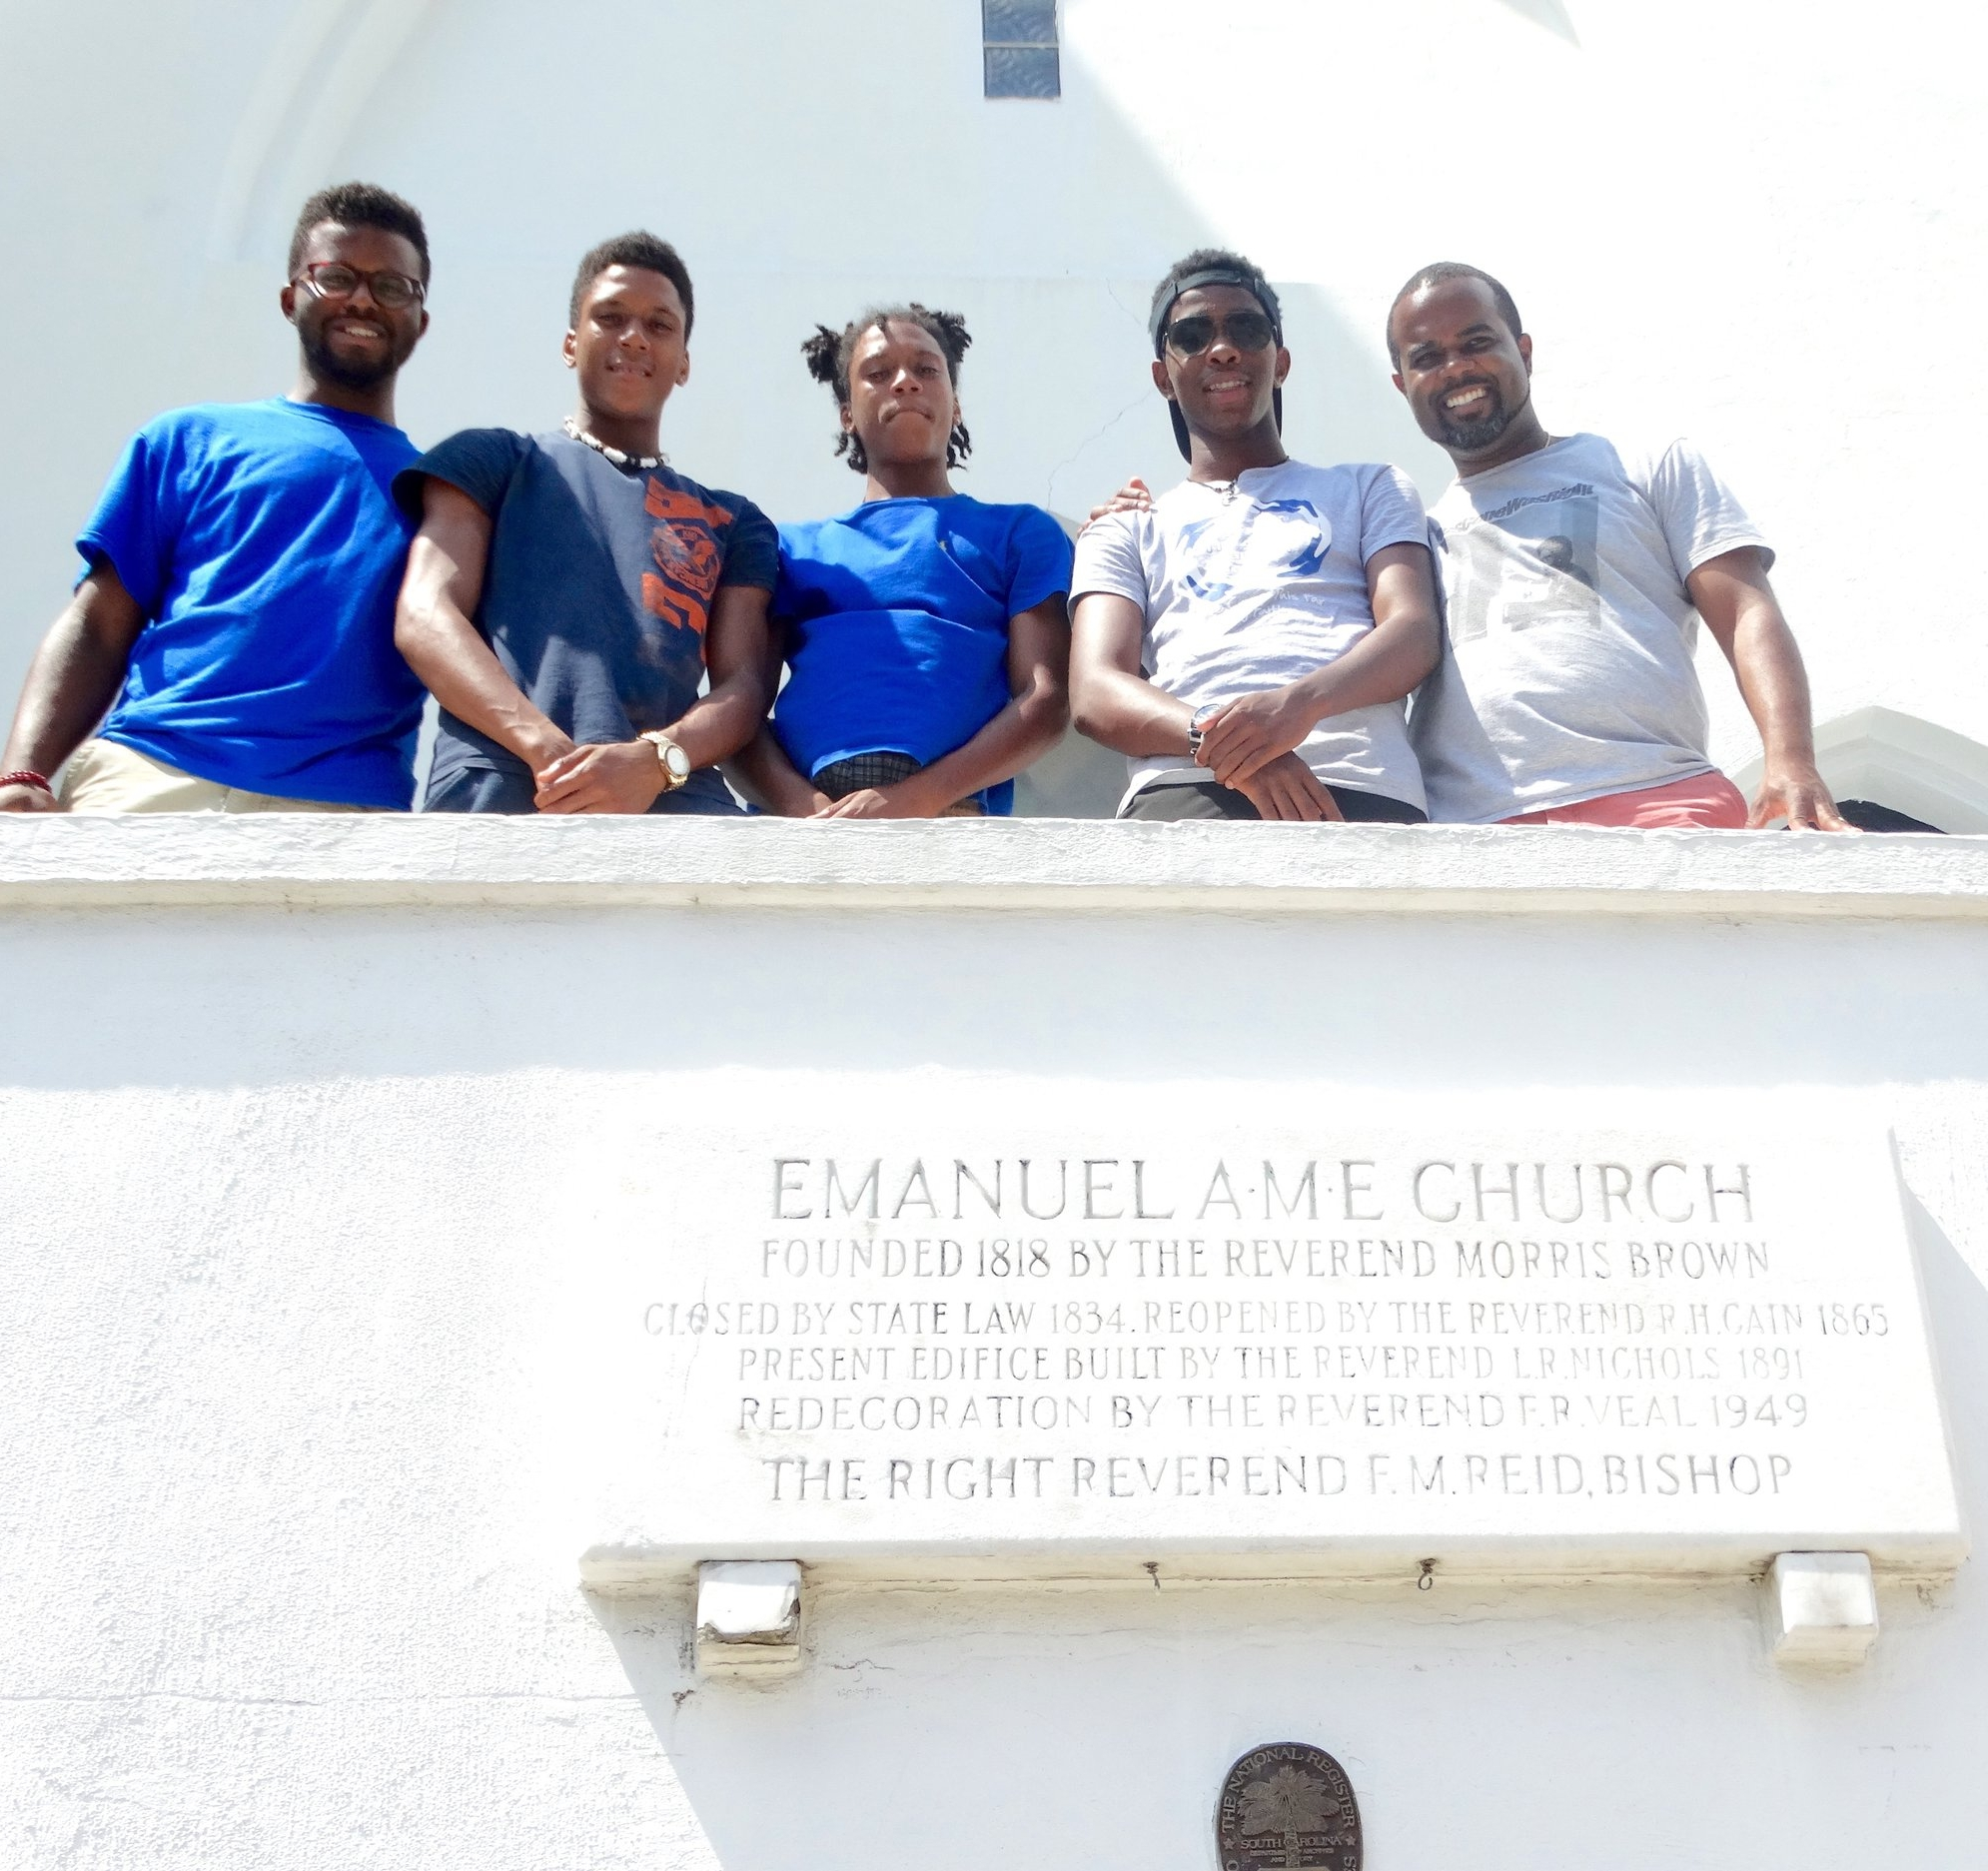 At mother emanuel ame church we heard stories of hope and paid homage to the charleston 9